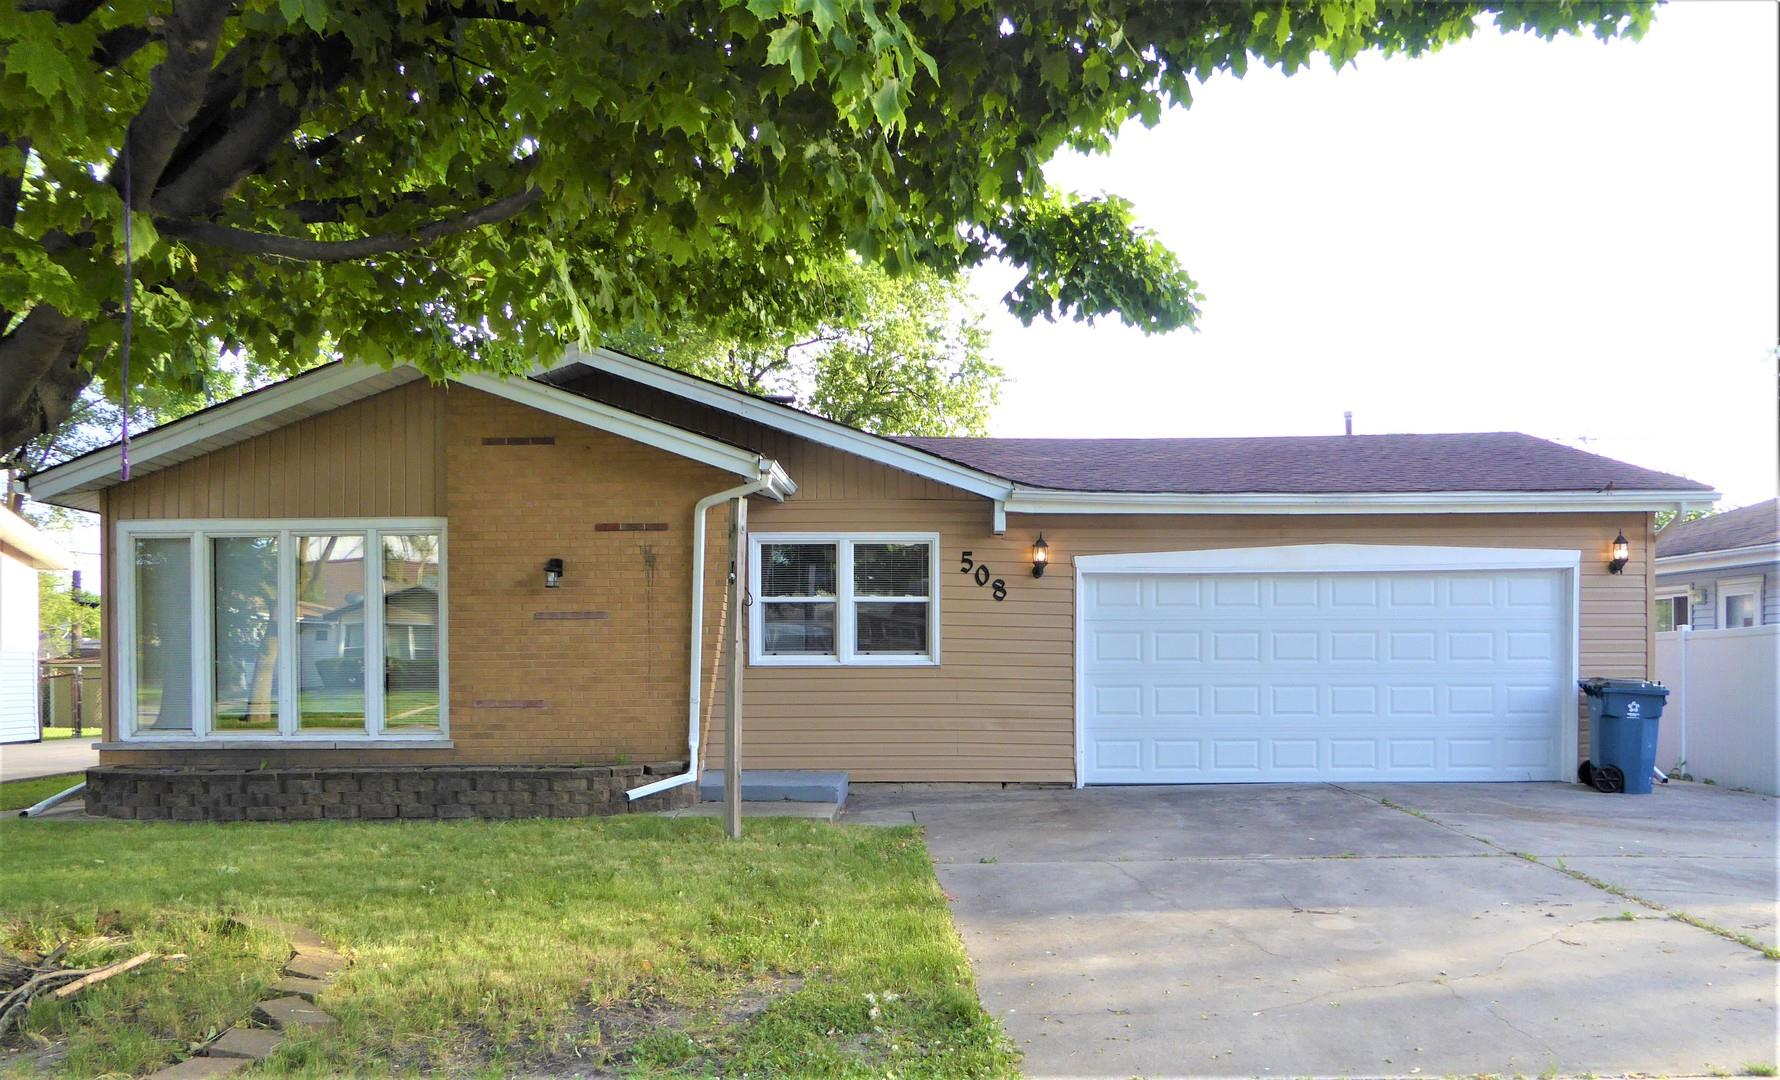 508 W Linda Lane, Addison, IL 60101 - #: 10742732